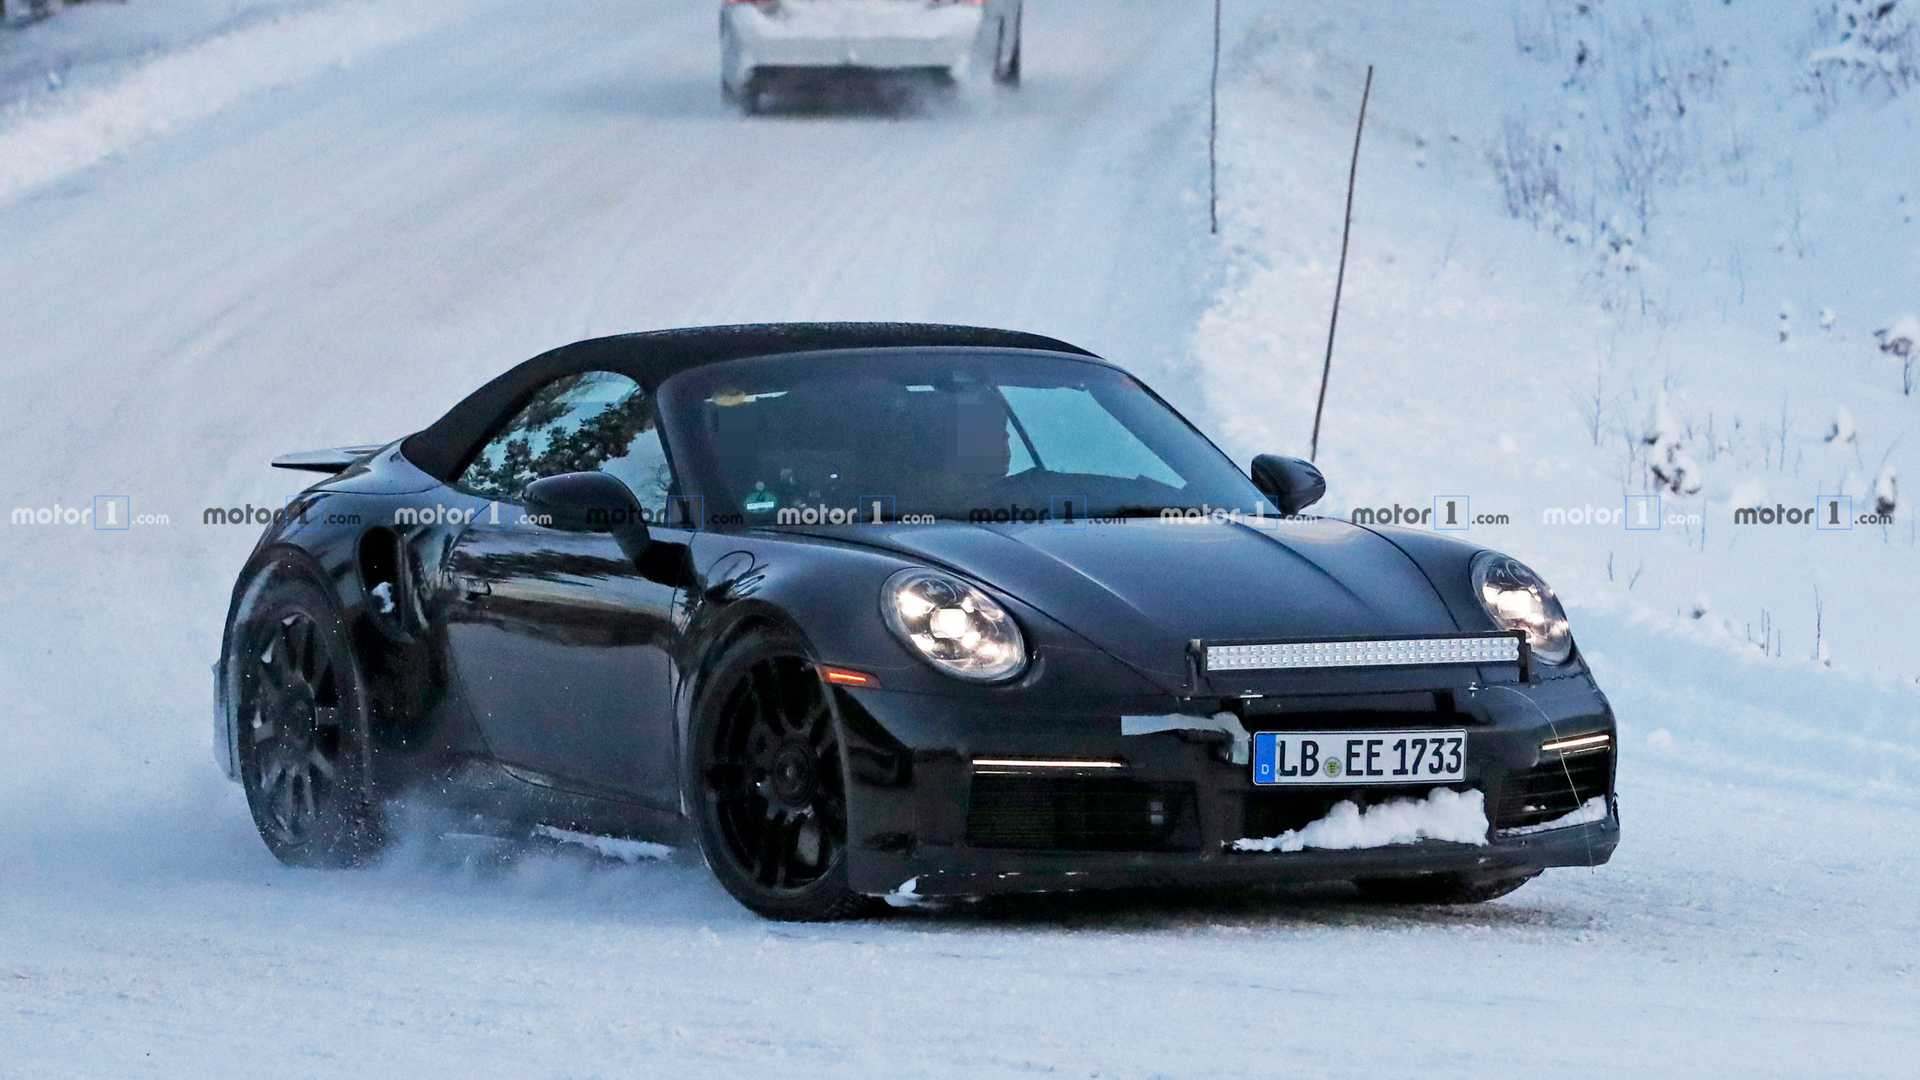 ca7a63bbc044 2020 Porsche 911 Turbo S Cabrio Spied Sliding Through Snow